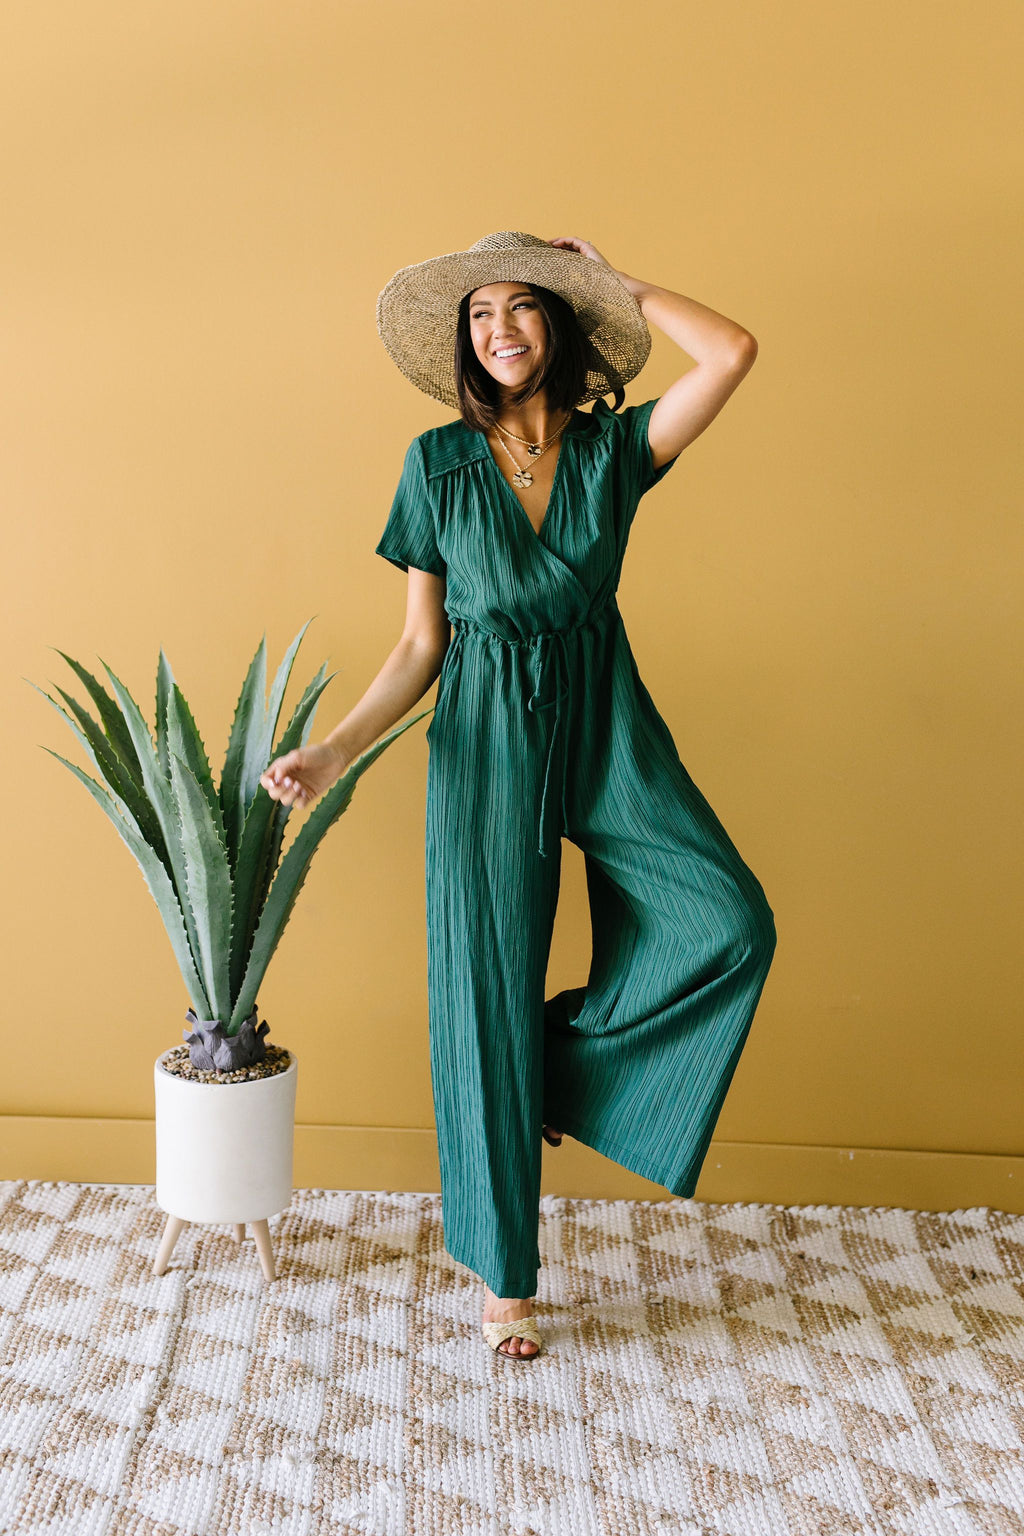 Ribbed Heaven Jumpsuit-1XL, 2XL, 3XL, 4TH2020, 6-18-2020, 6-26-2020, Bonus, Bottoms, Group A, Group B, Group C, Large, Medium, Plus, Small, XL, XS-Womens Artisan USA American Made Clothing Accessories